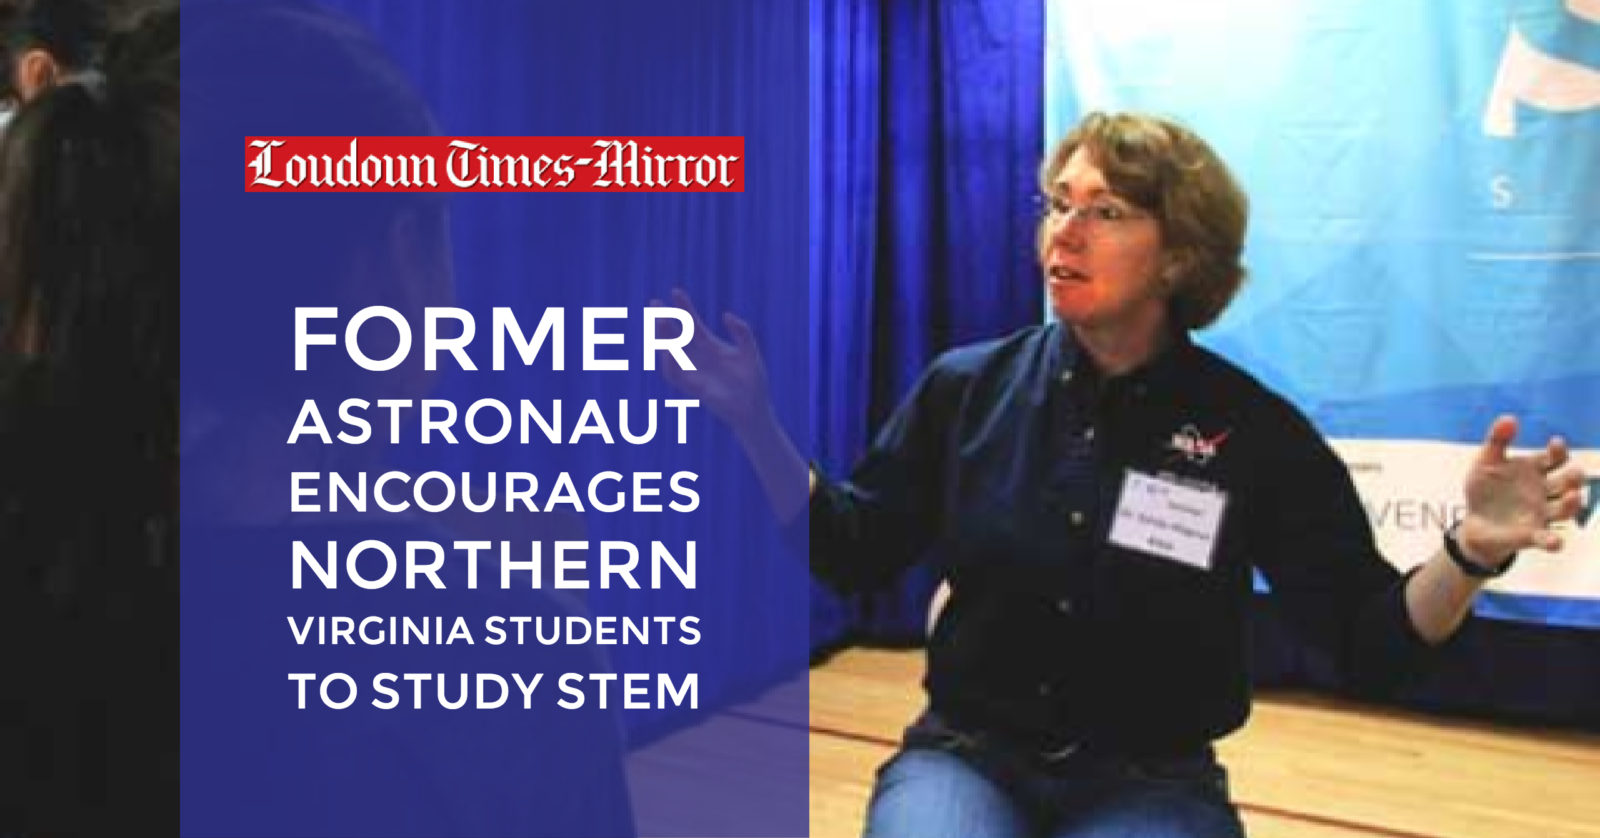 Former astronaut encourages Northern Virginia students to study STEM